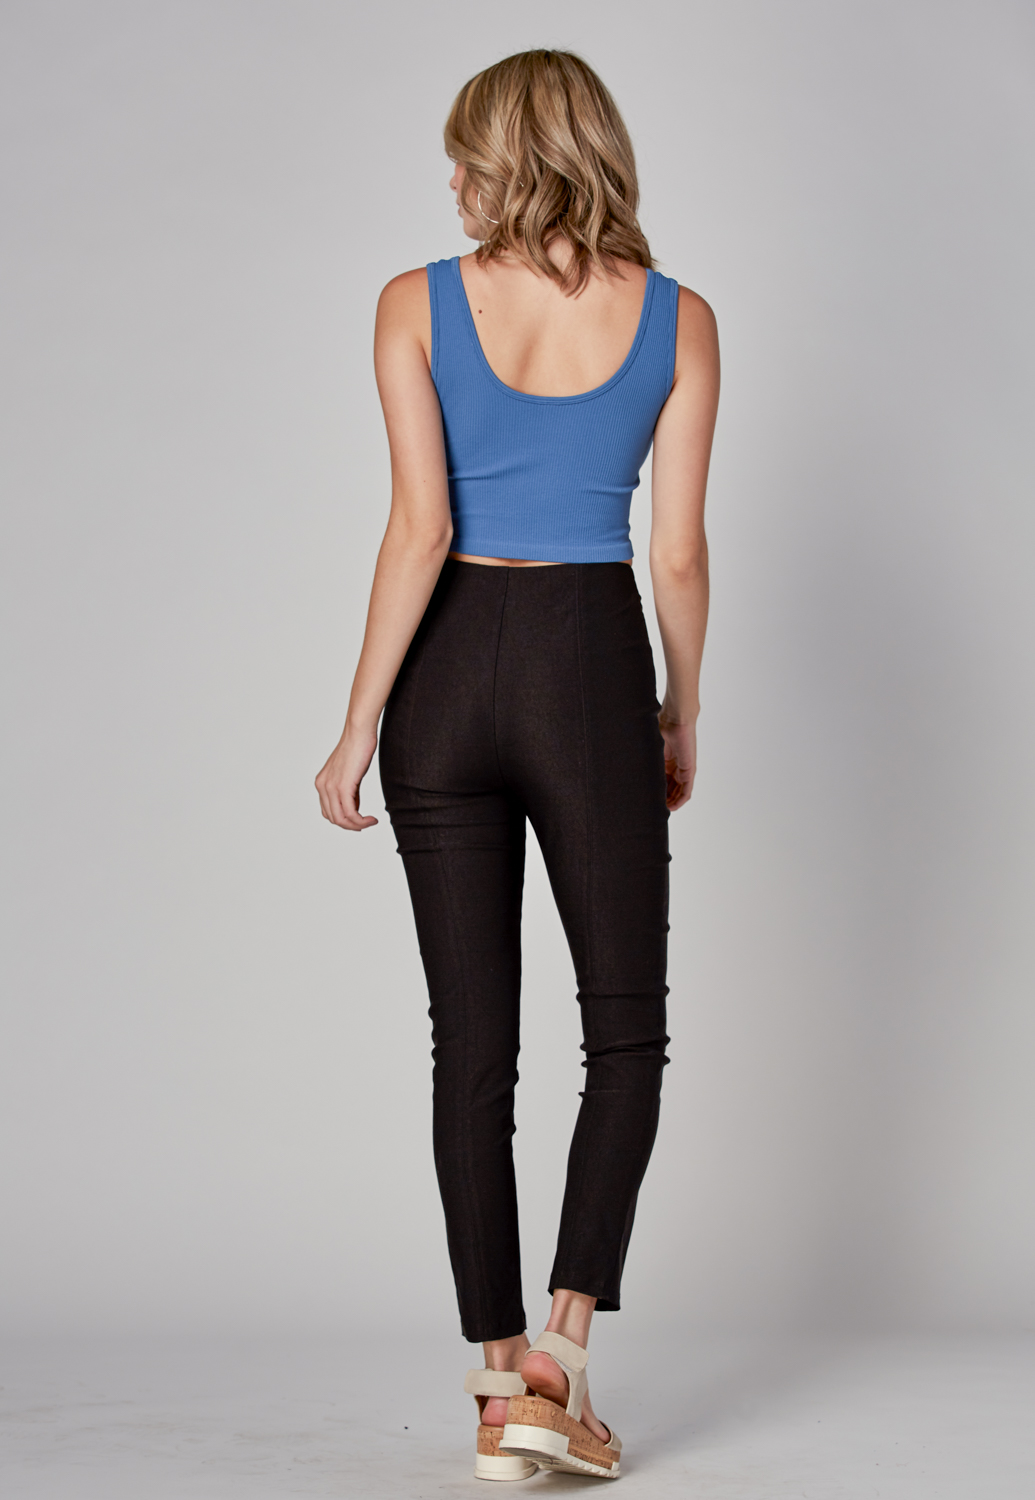 High Waist Front Zipper Pants